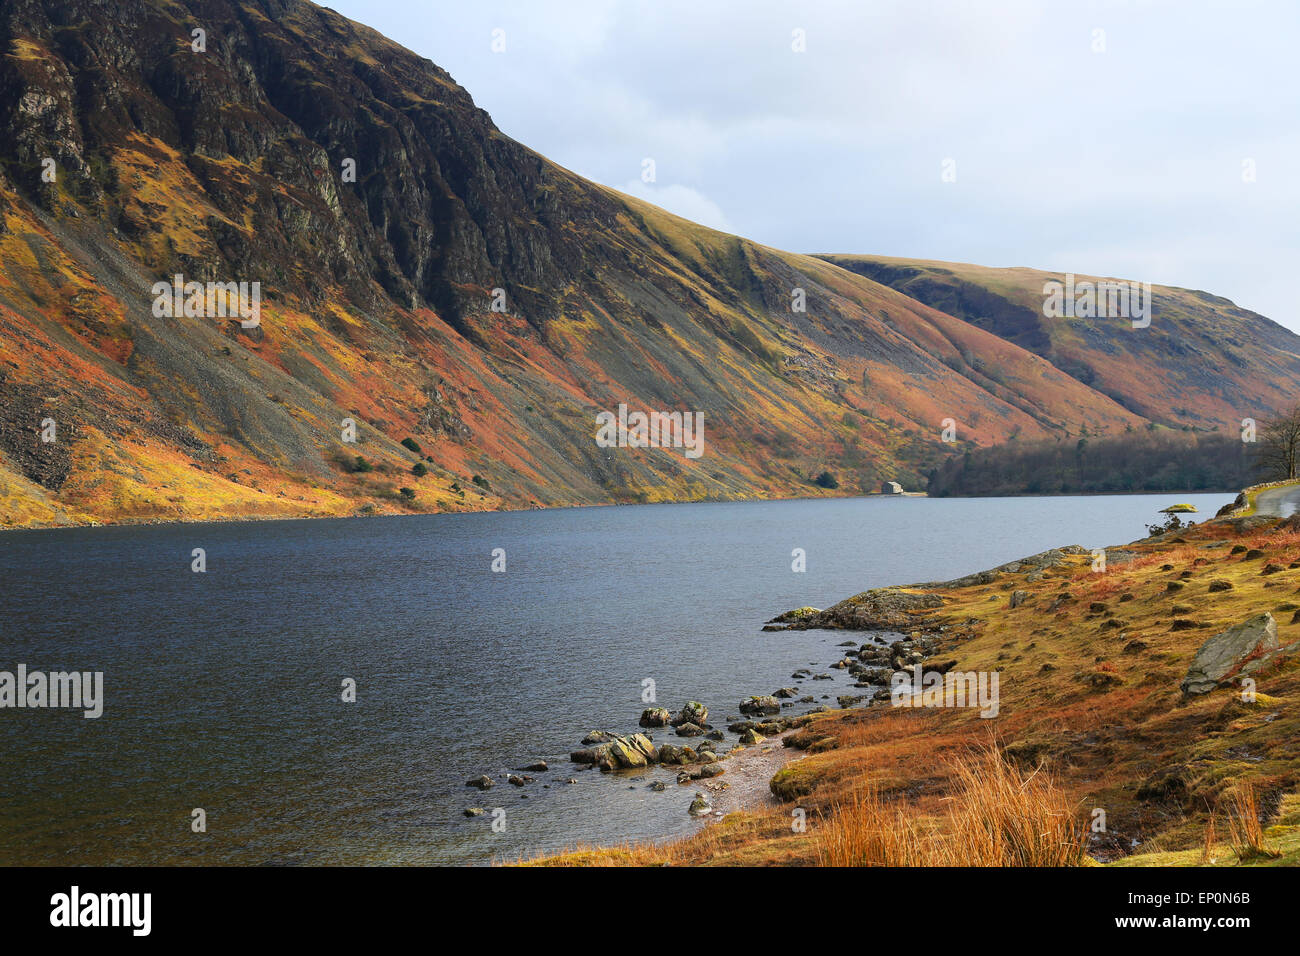 Wast water in Lake District, UK - Stock Image